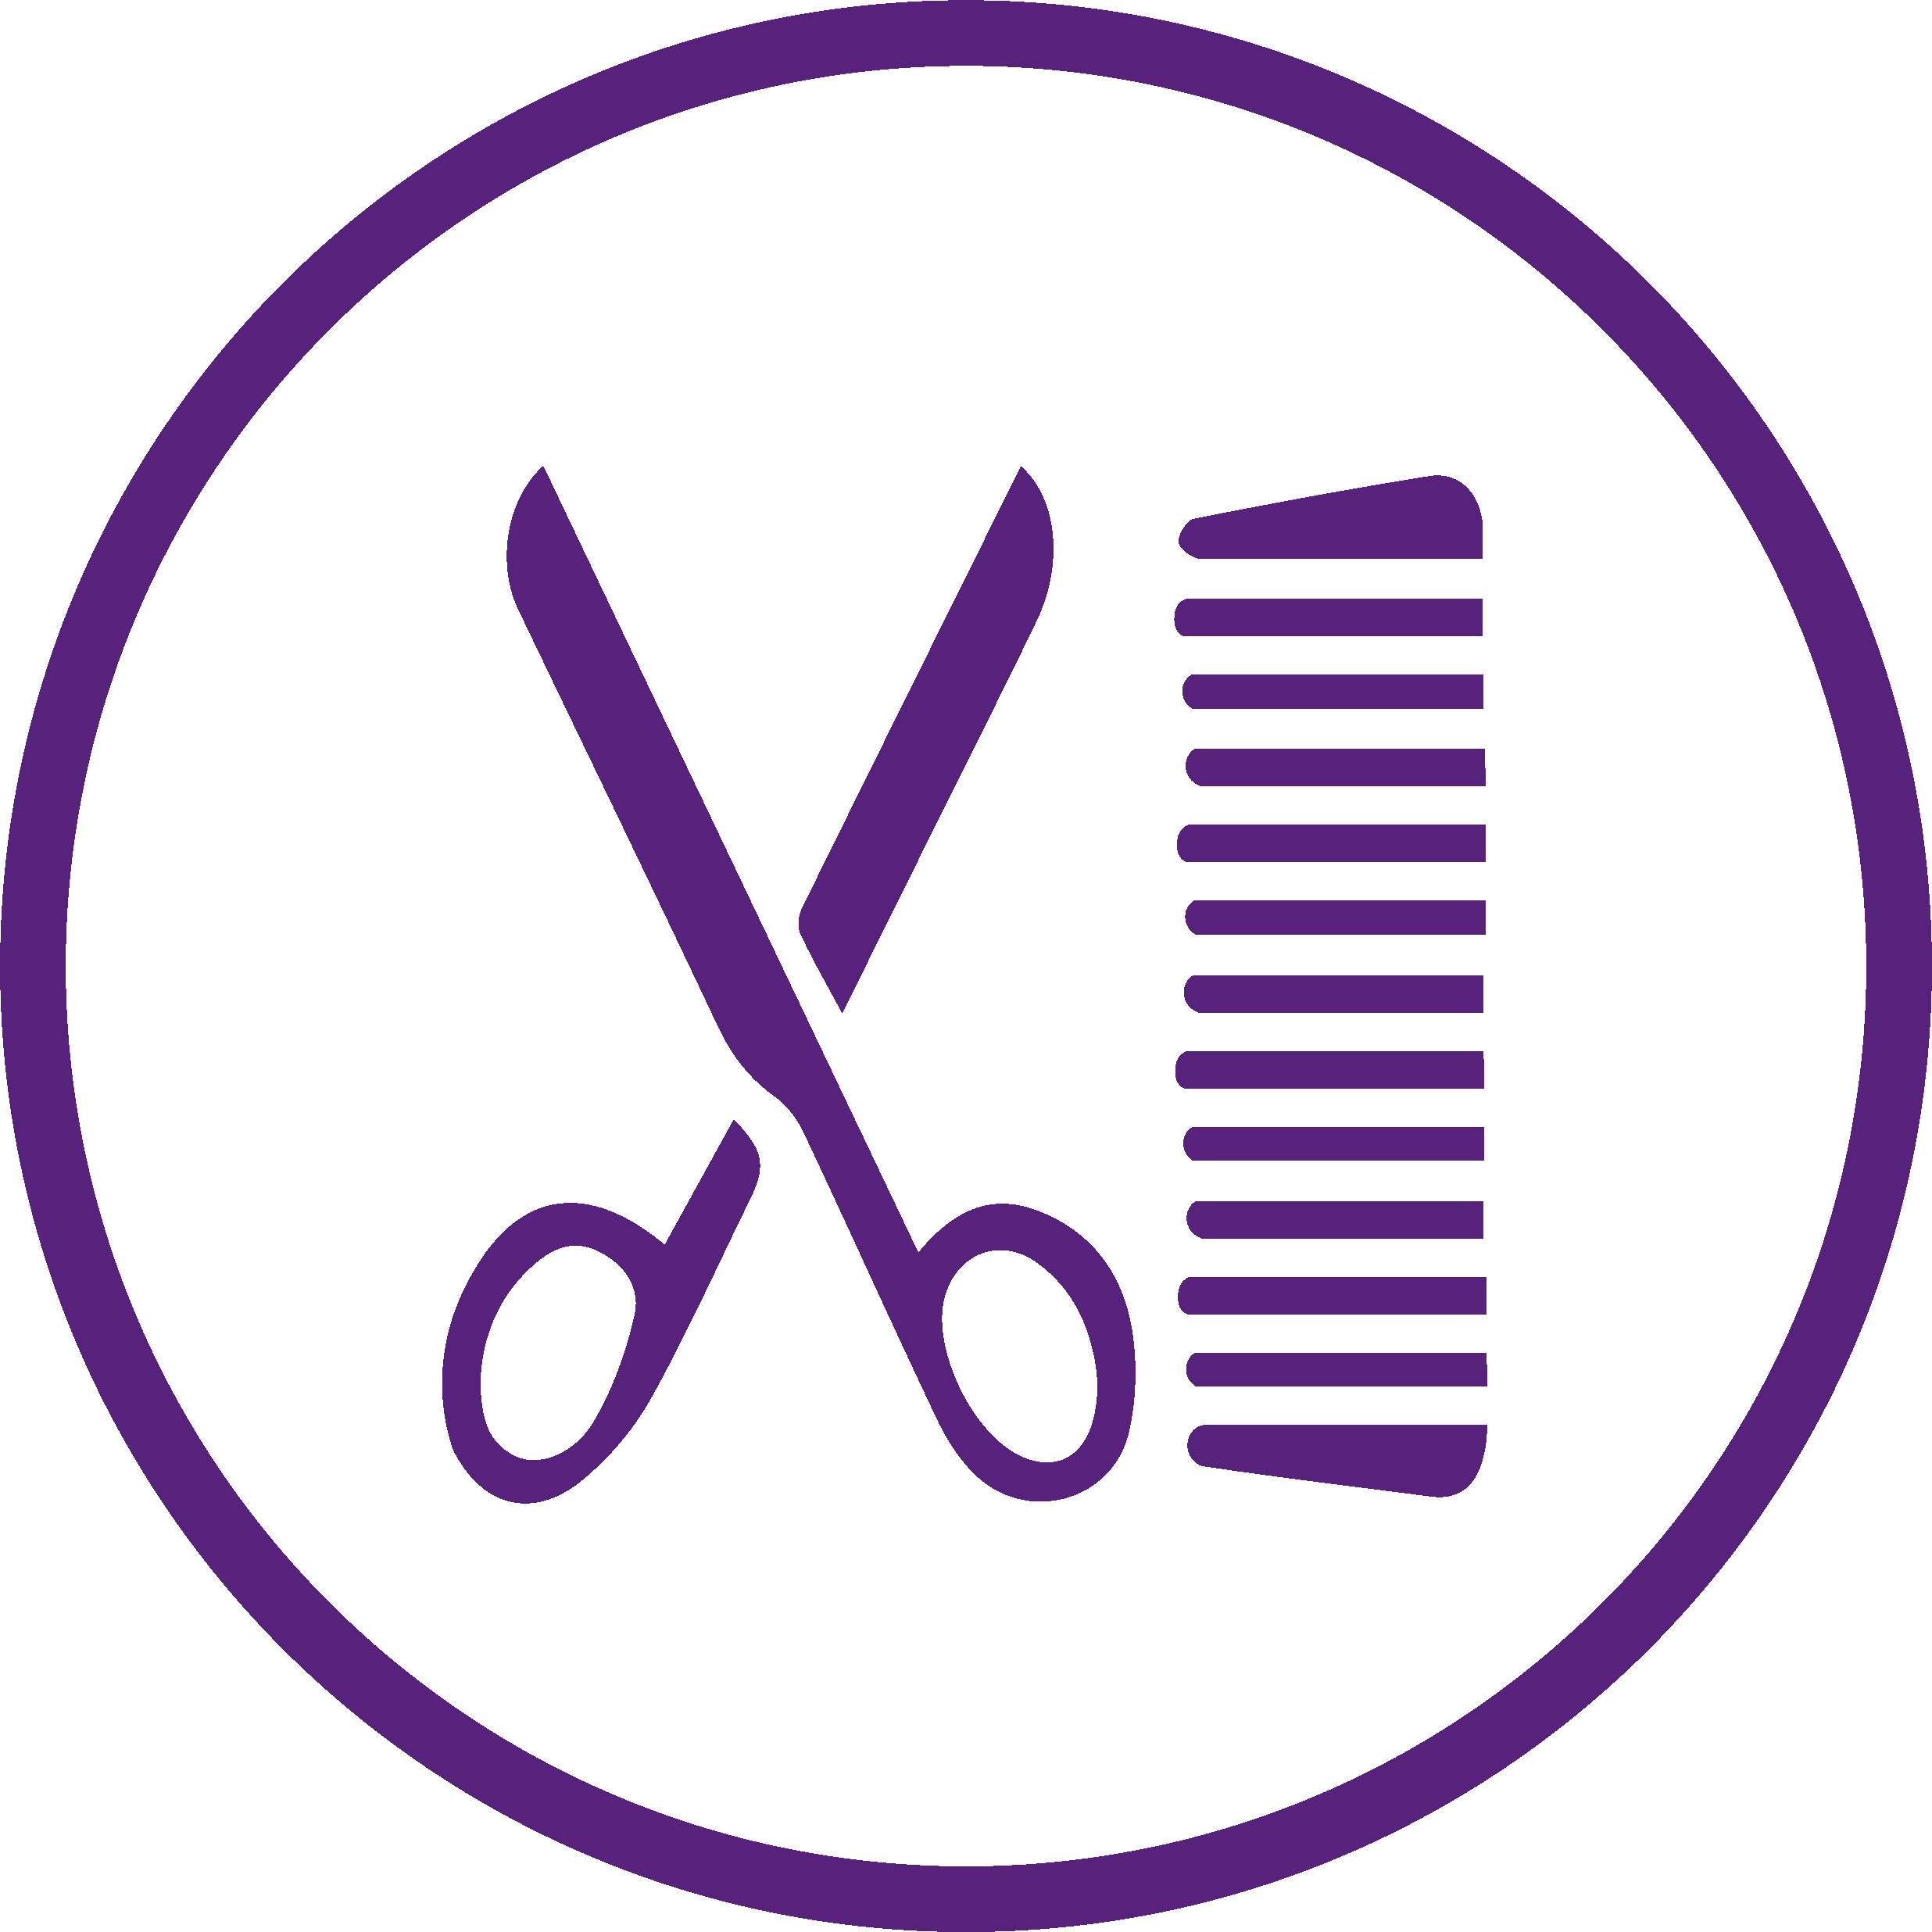 purple logo of scissors and comb